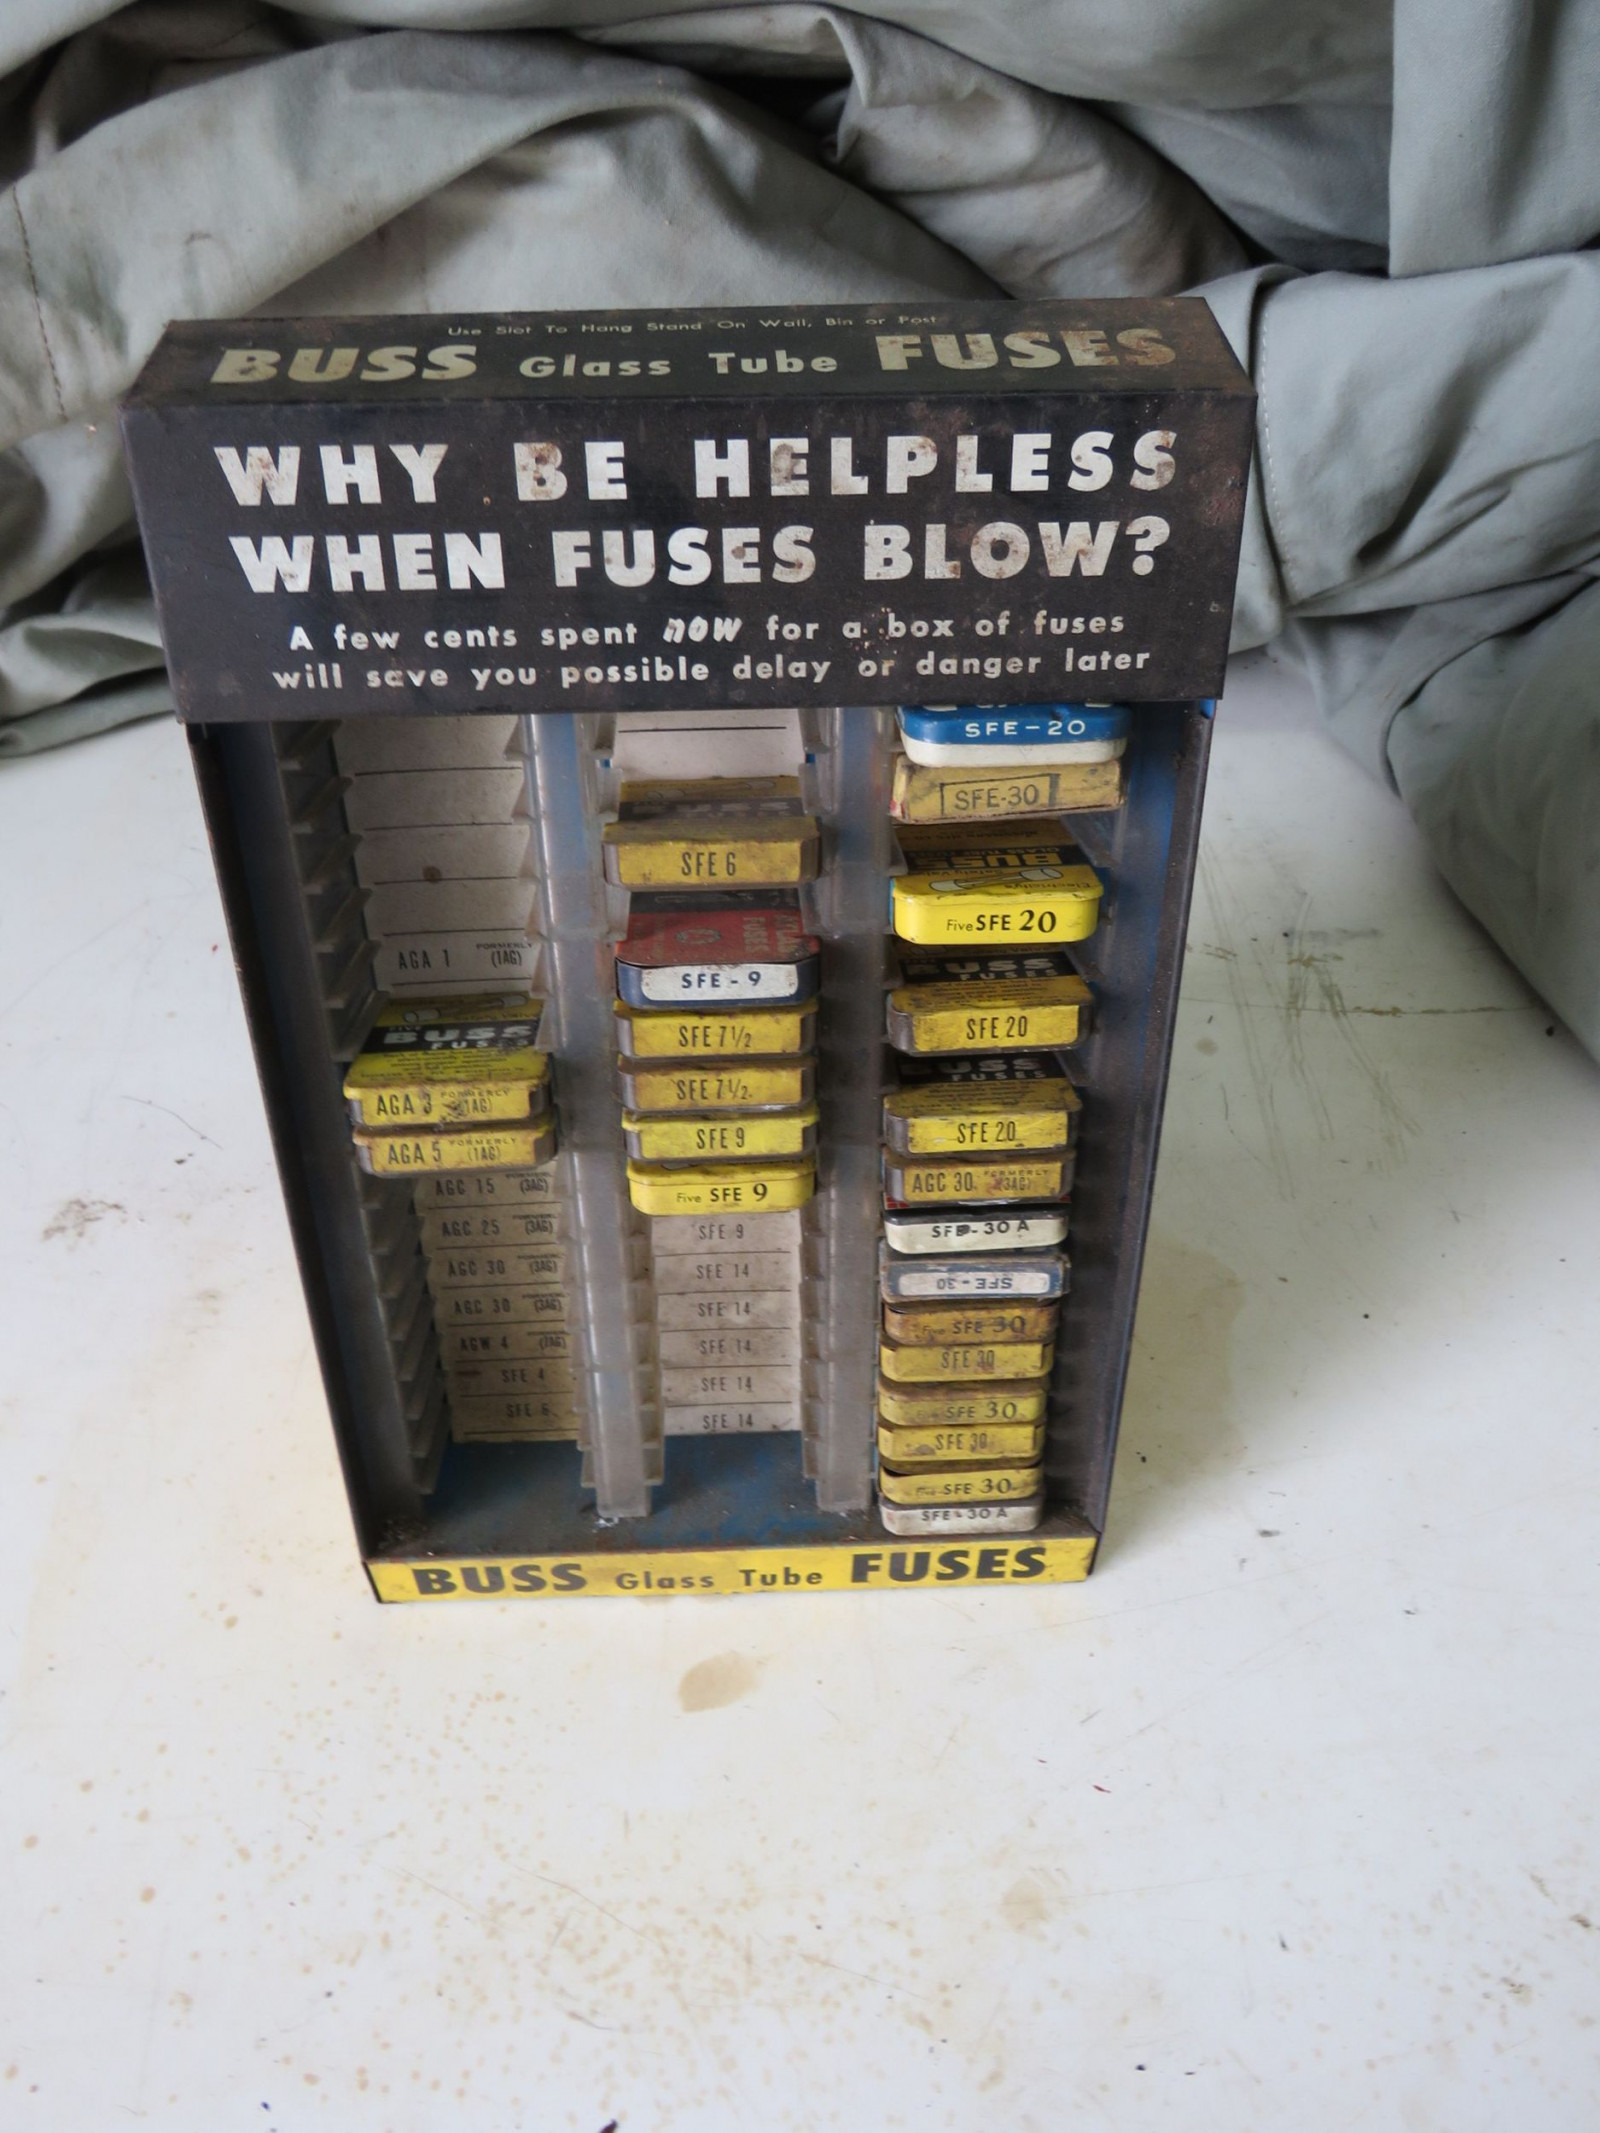 Buss Fuse display - Image 1